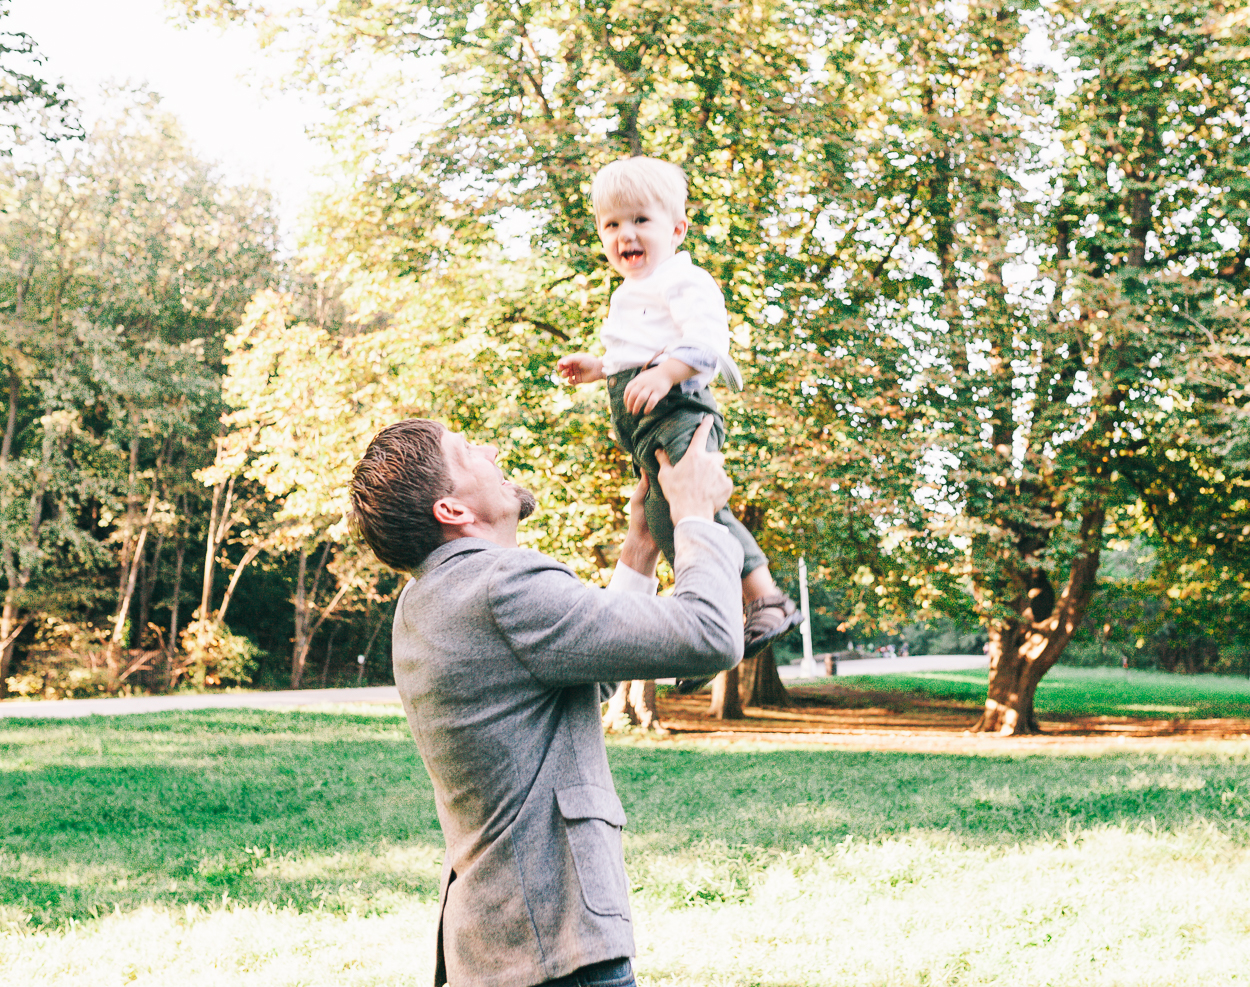 daddy lifting up son in brooklyn family photography prospect park charis elisabeth 1787